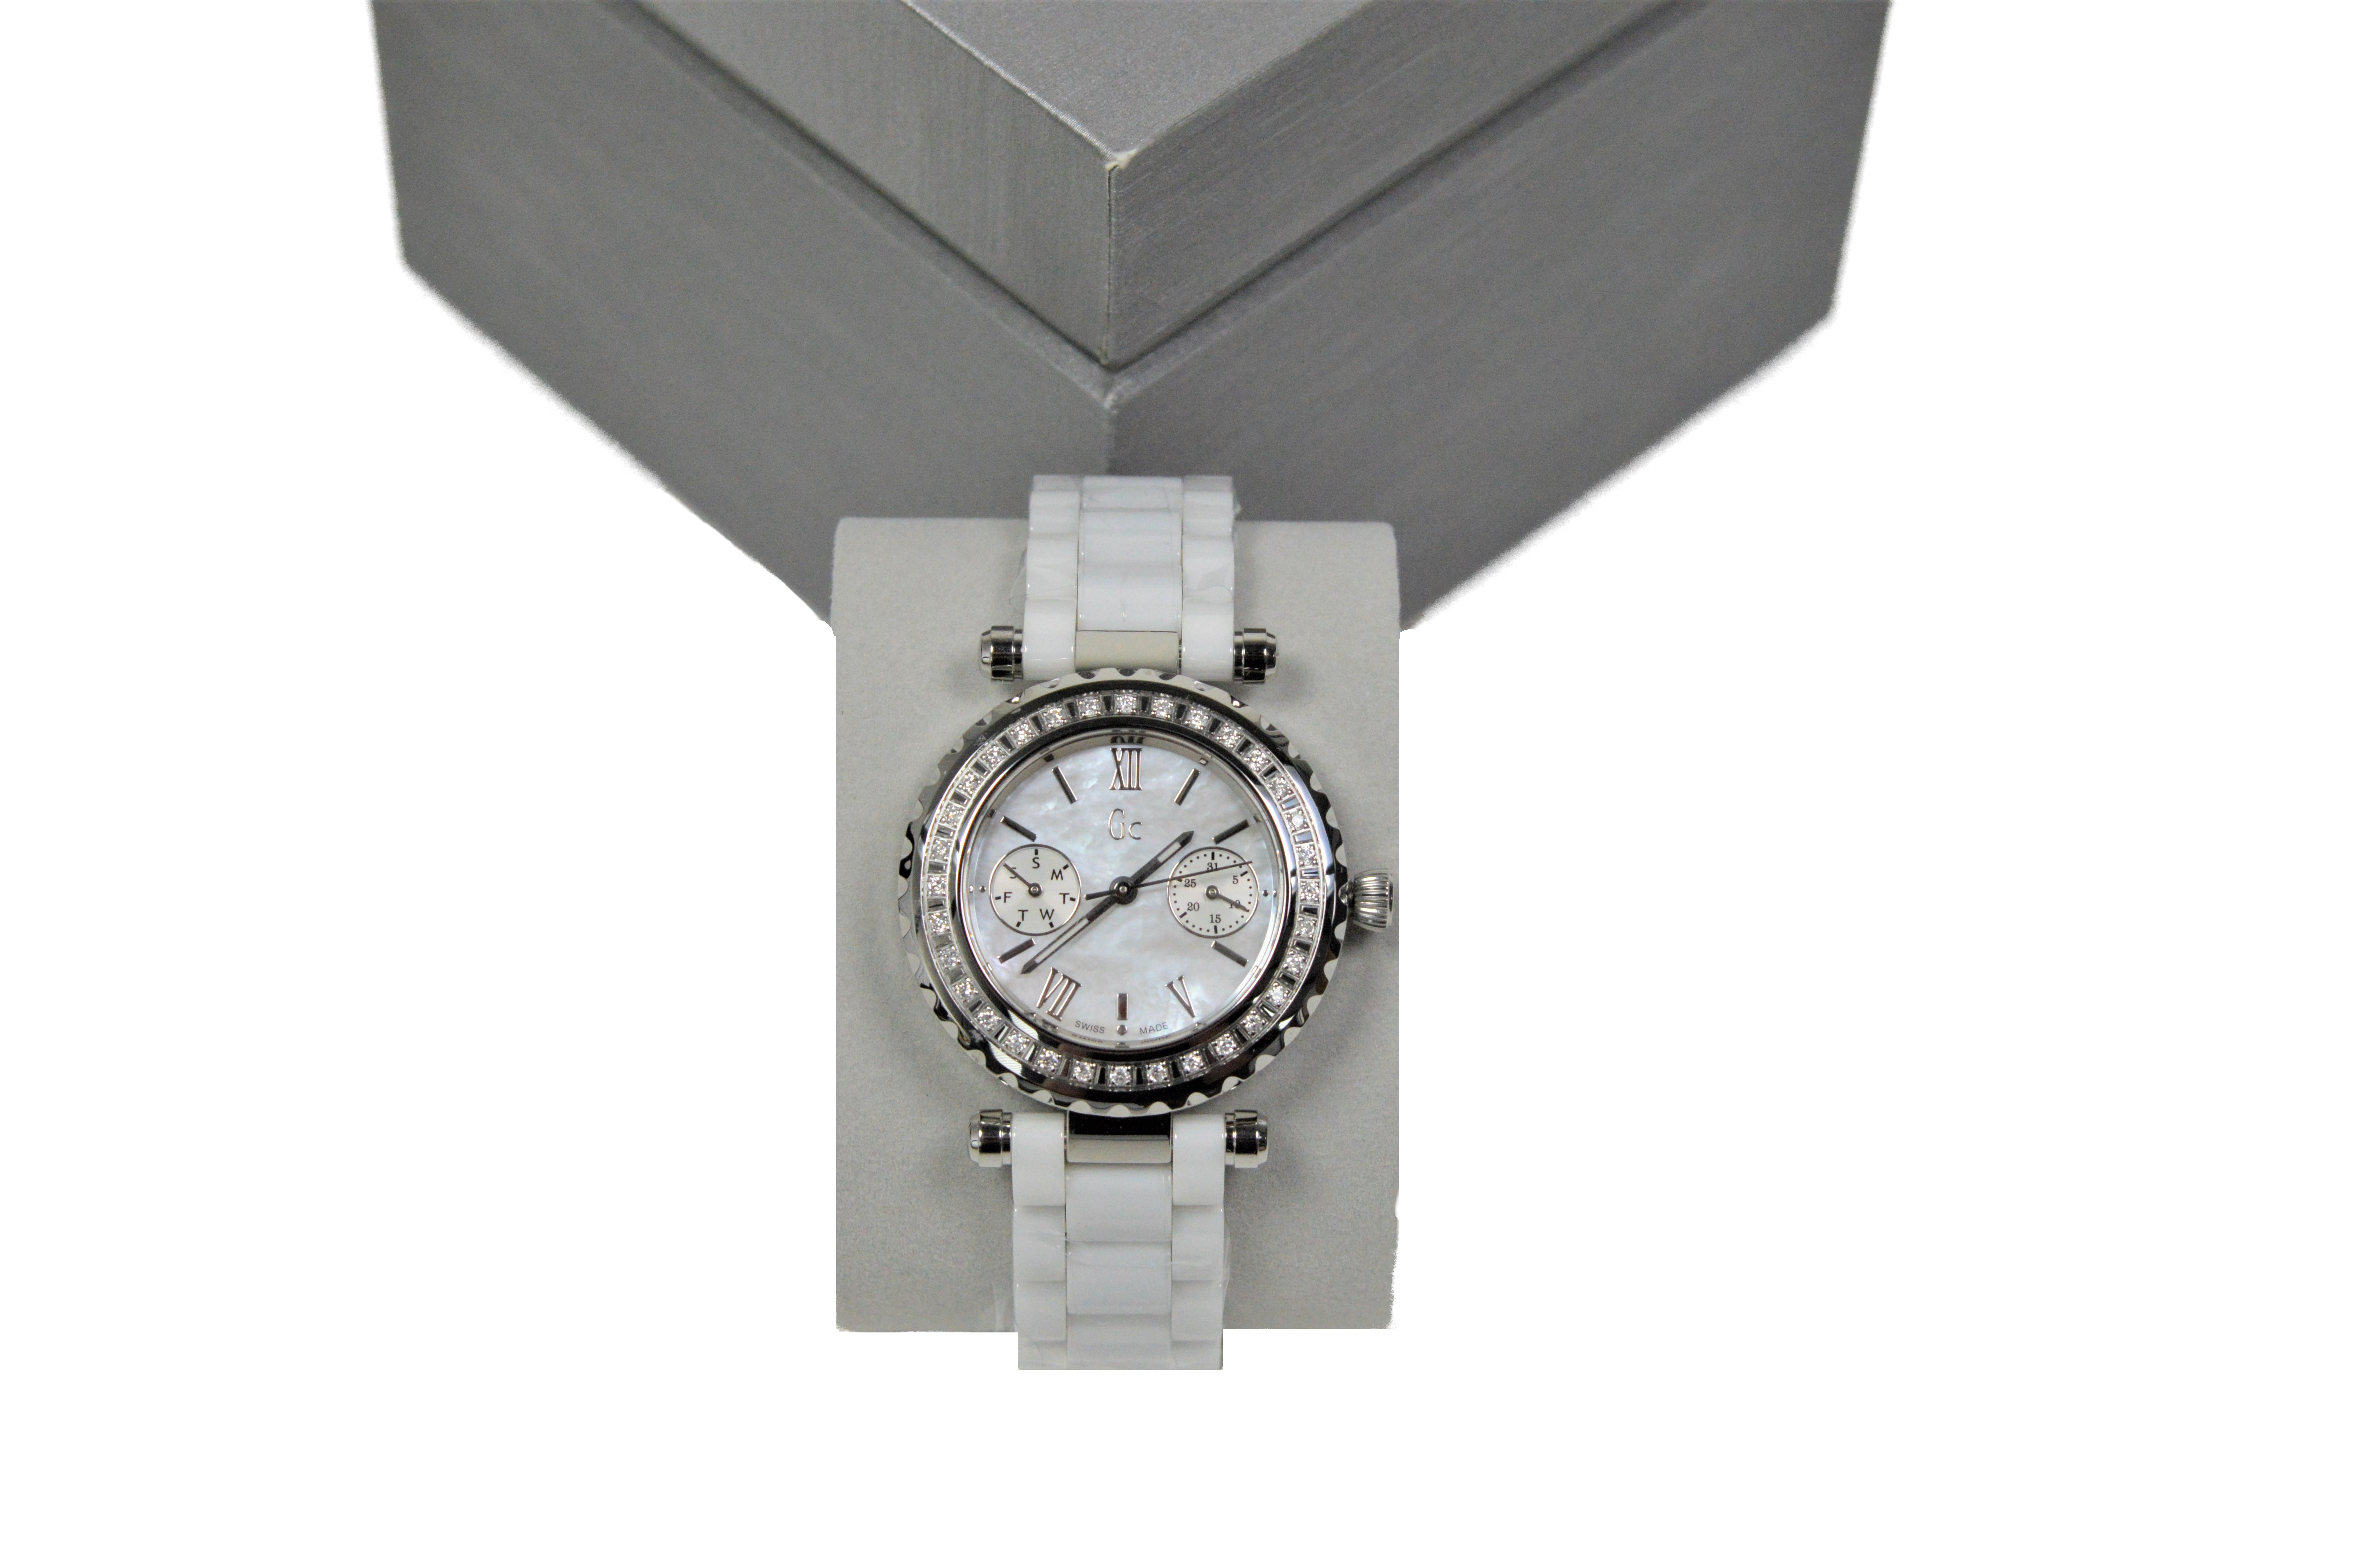 0088274b8 Details about GC Collection I01200L1 Womens Diver Chic White Ceramic Watch  / 32 Diamond Bezel